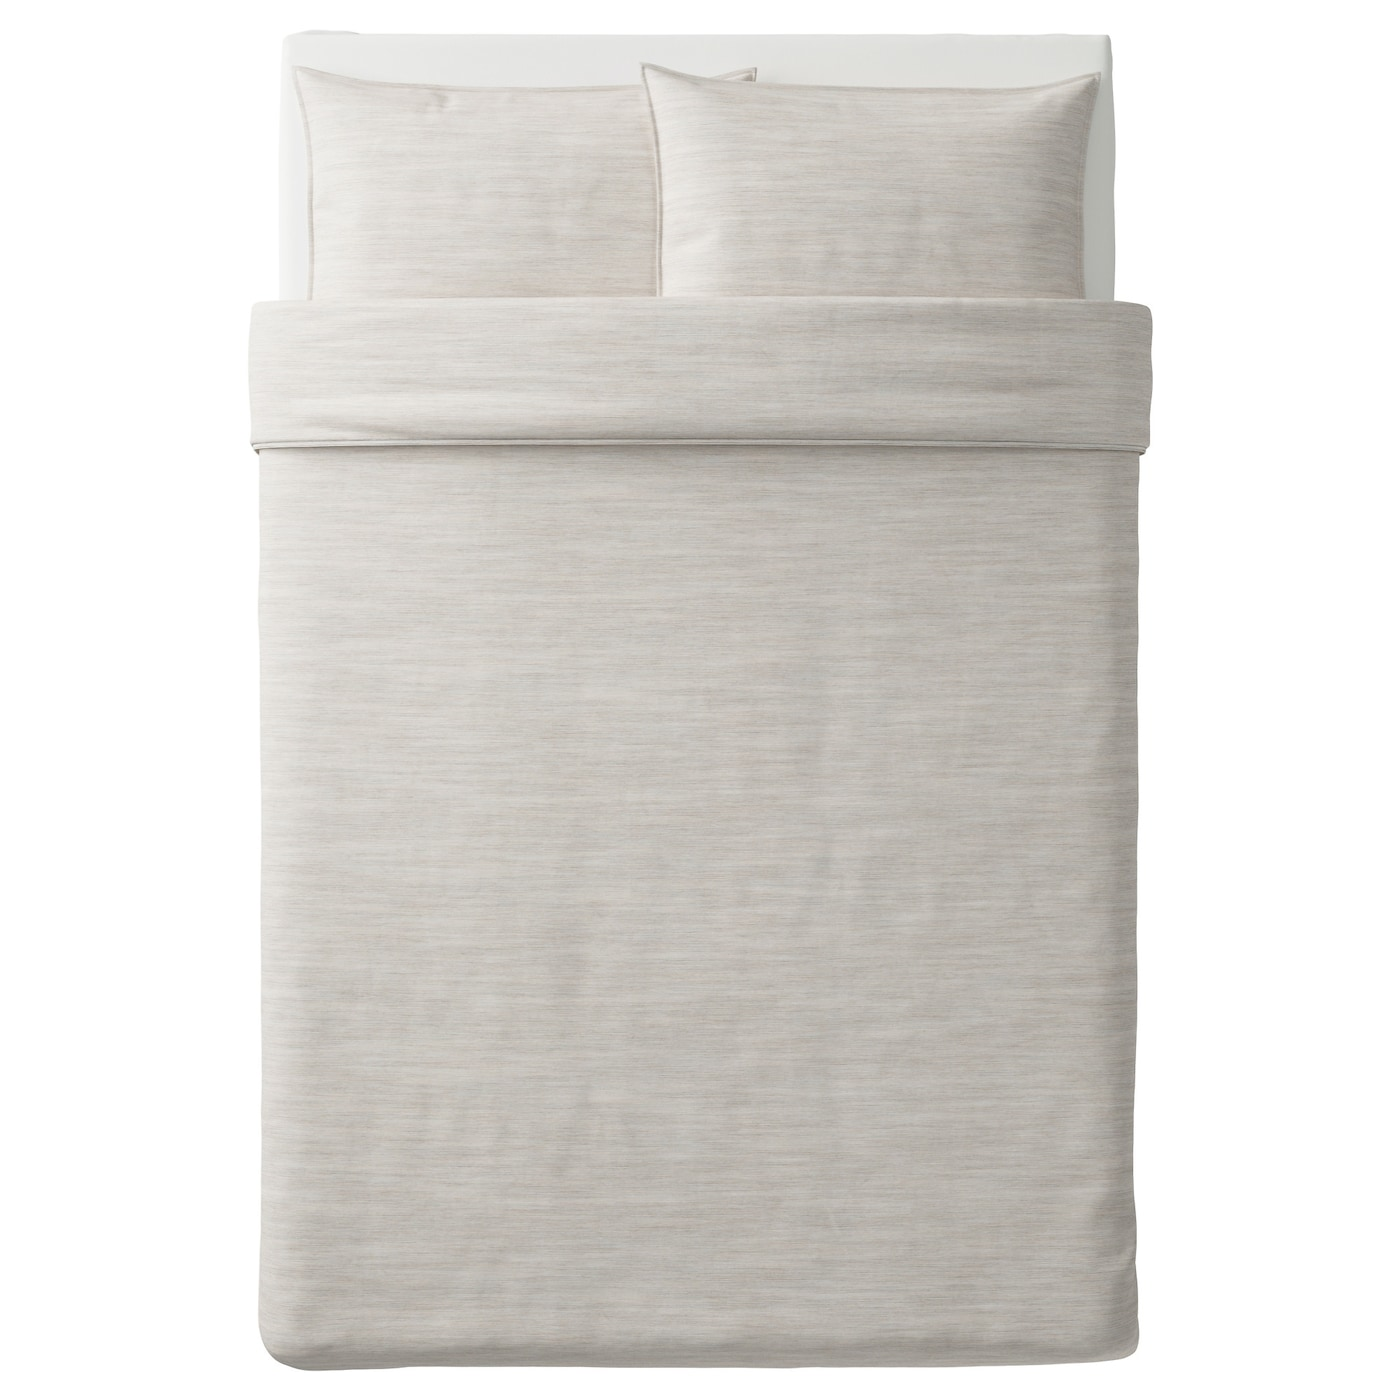 skogsalm quilt cover and 2 pillowcases beige 200x200 50x80. Black Bedroom Furniture Sets. Home Design Ideas